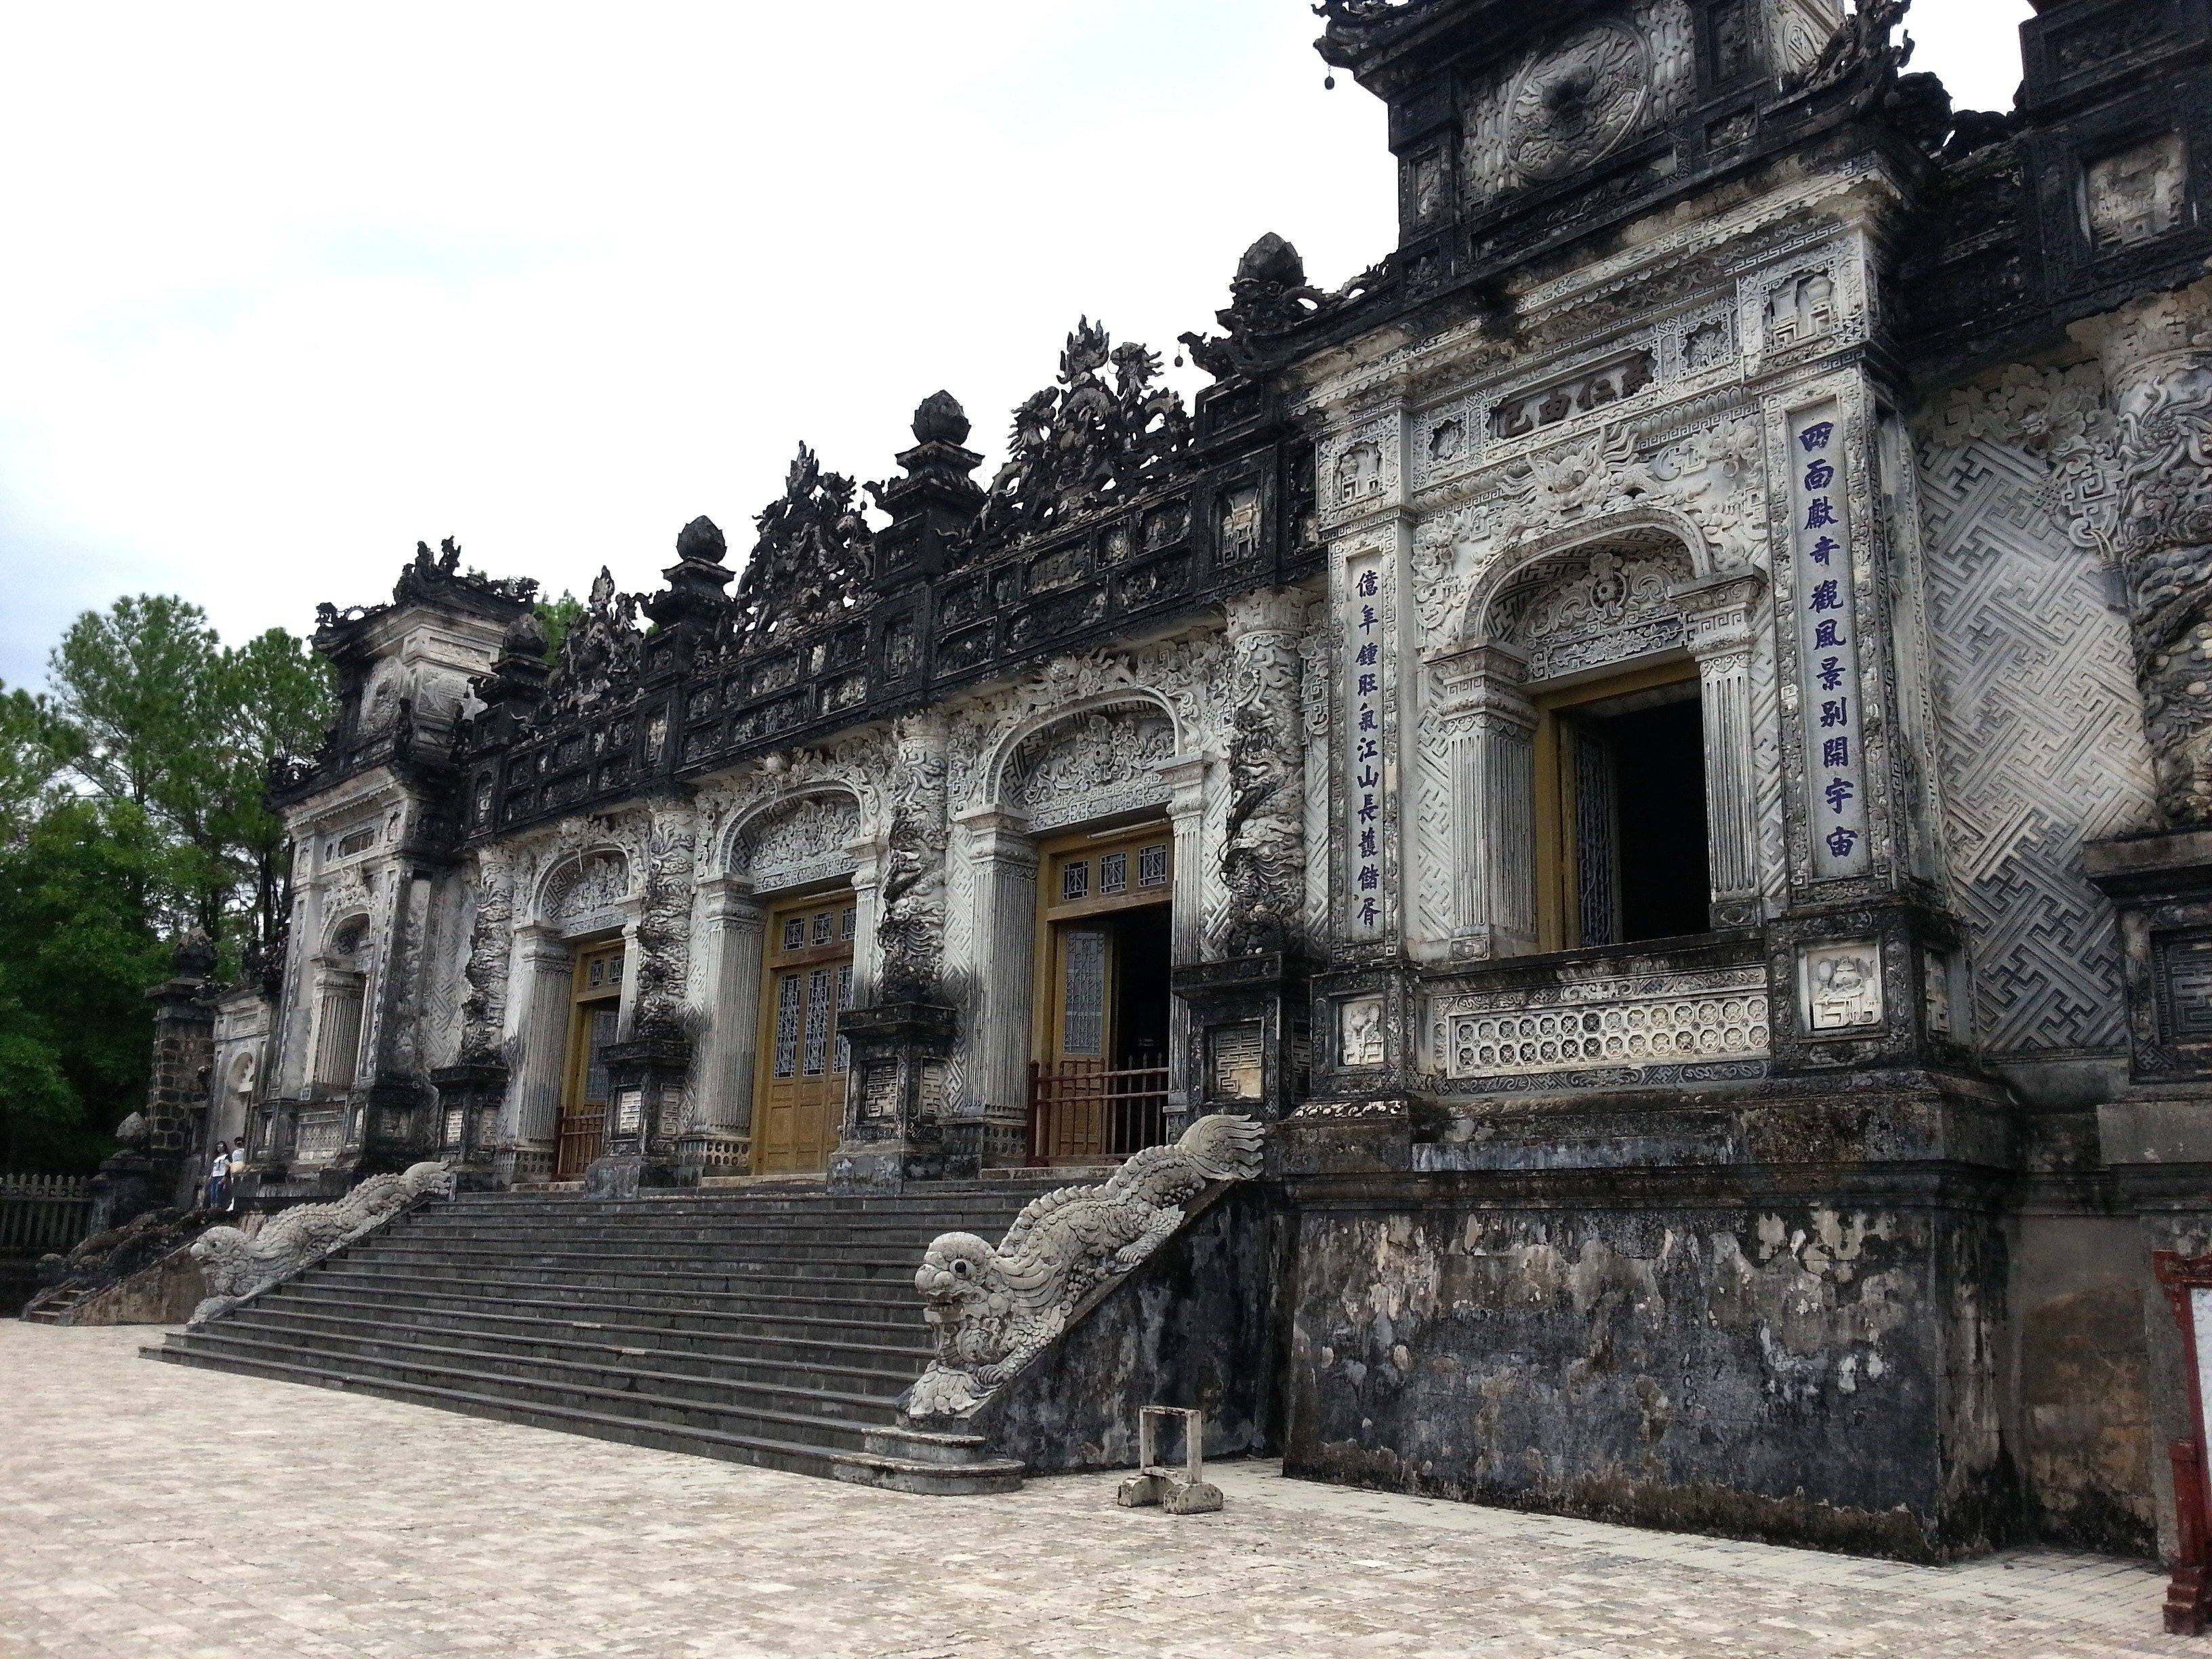 Tomb of Emperor Khai Dinh in Hue